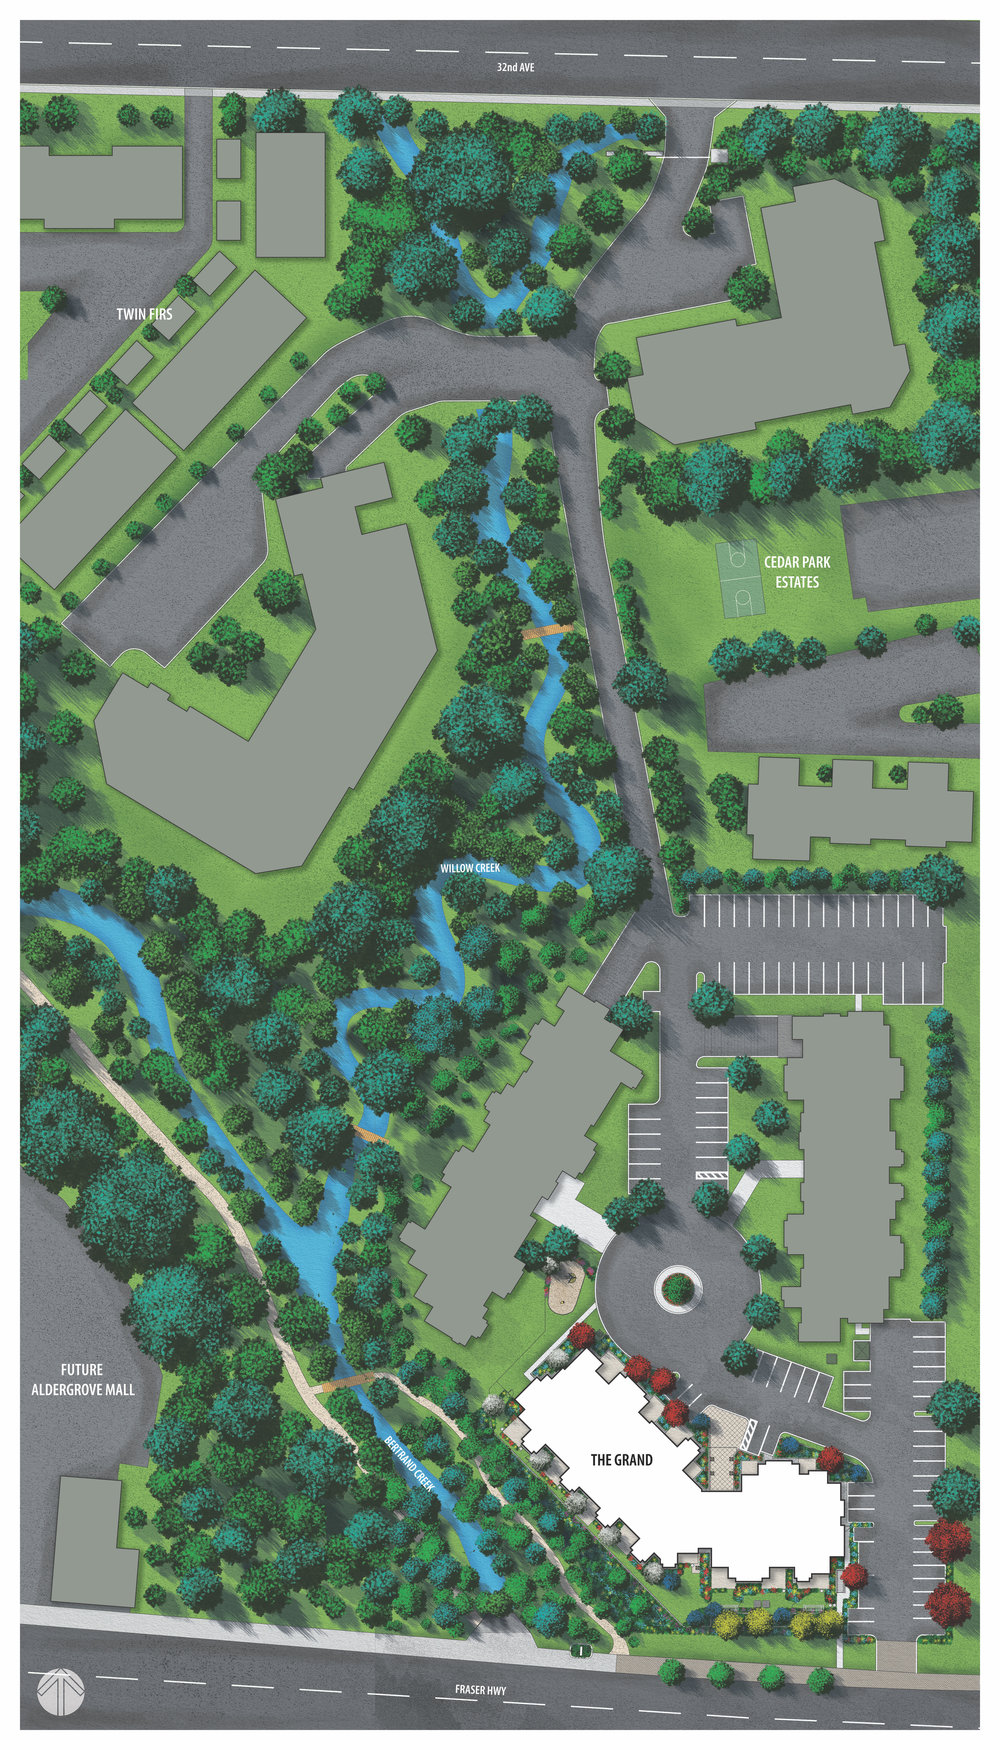 A New Mall for a New Aldergrove. - Theproposed Aldergrove Mall redevelopment is quietly nestled over approximately 10 acres backing onto Bertrand Creek.